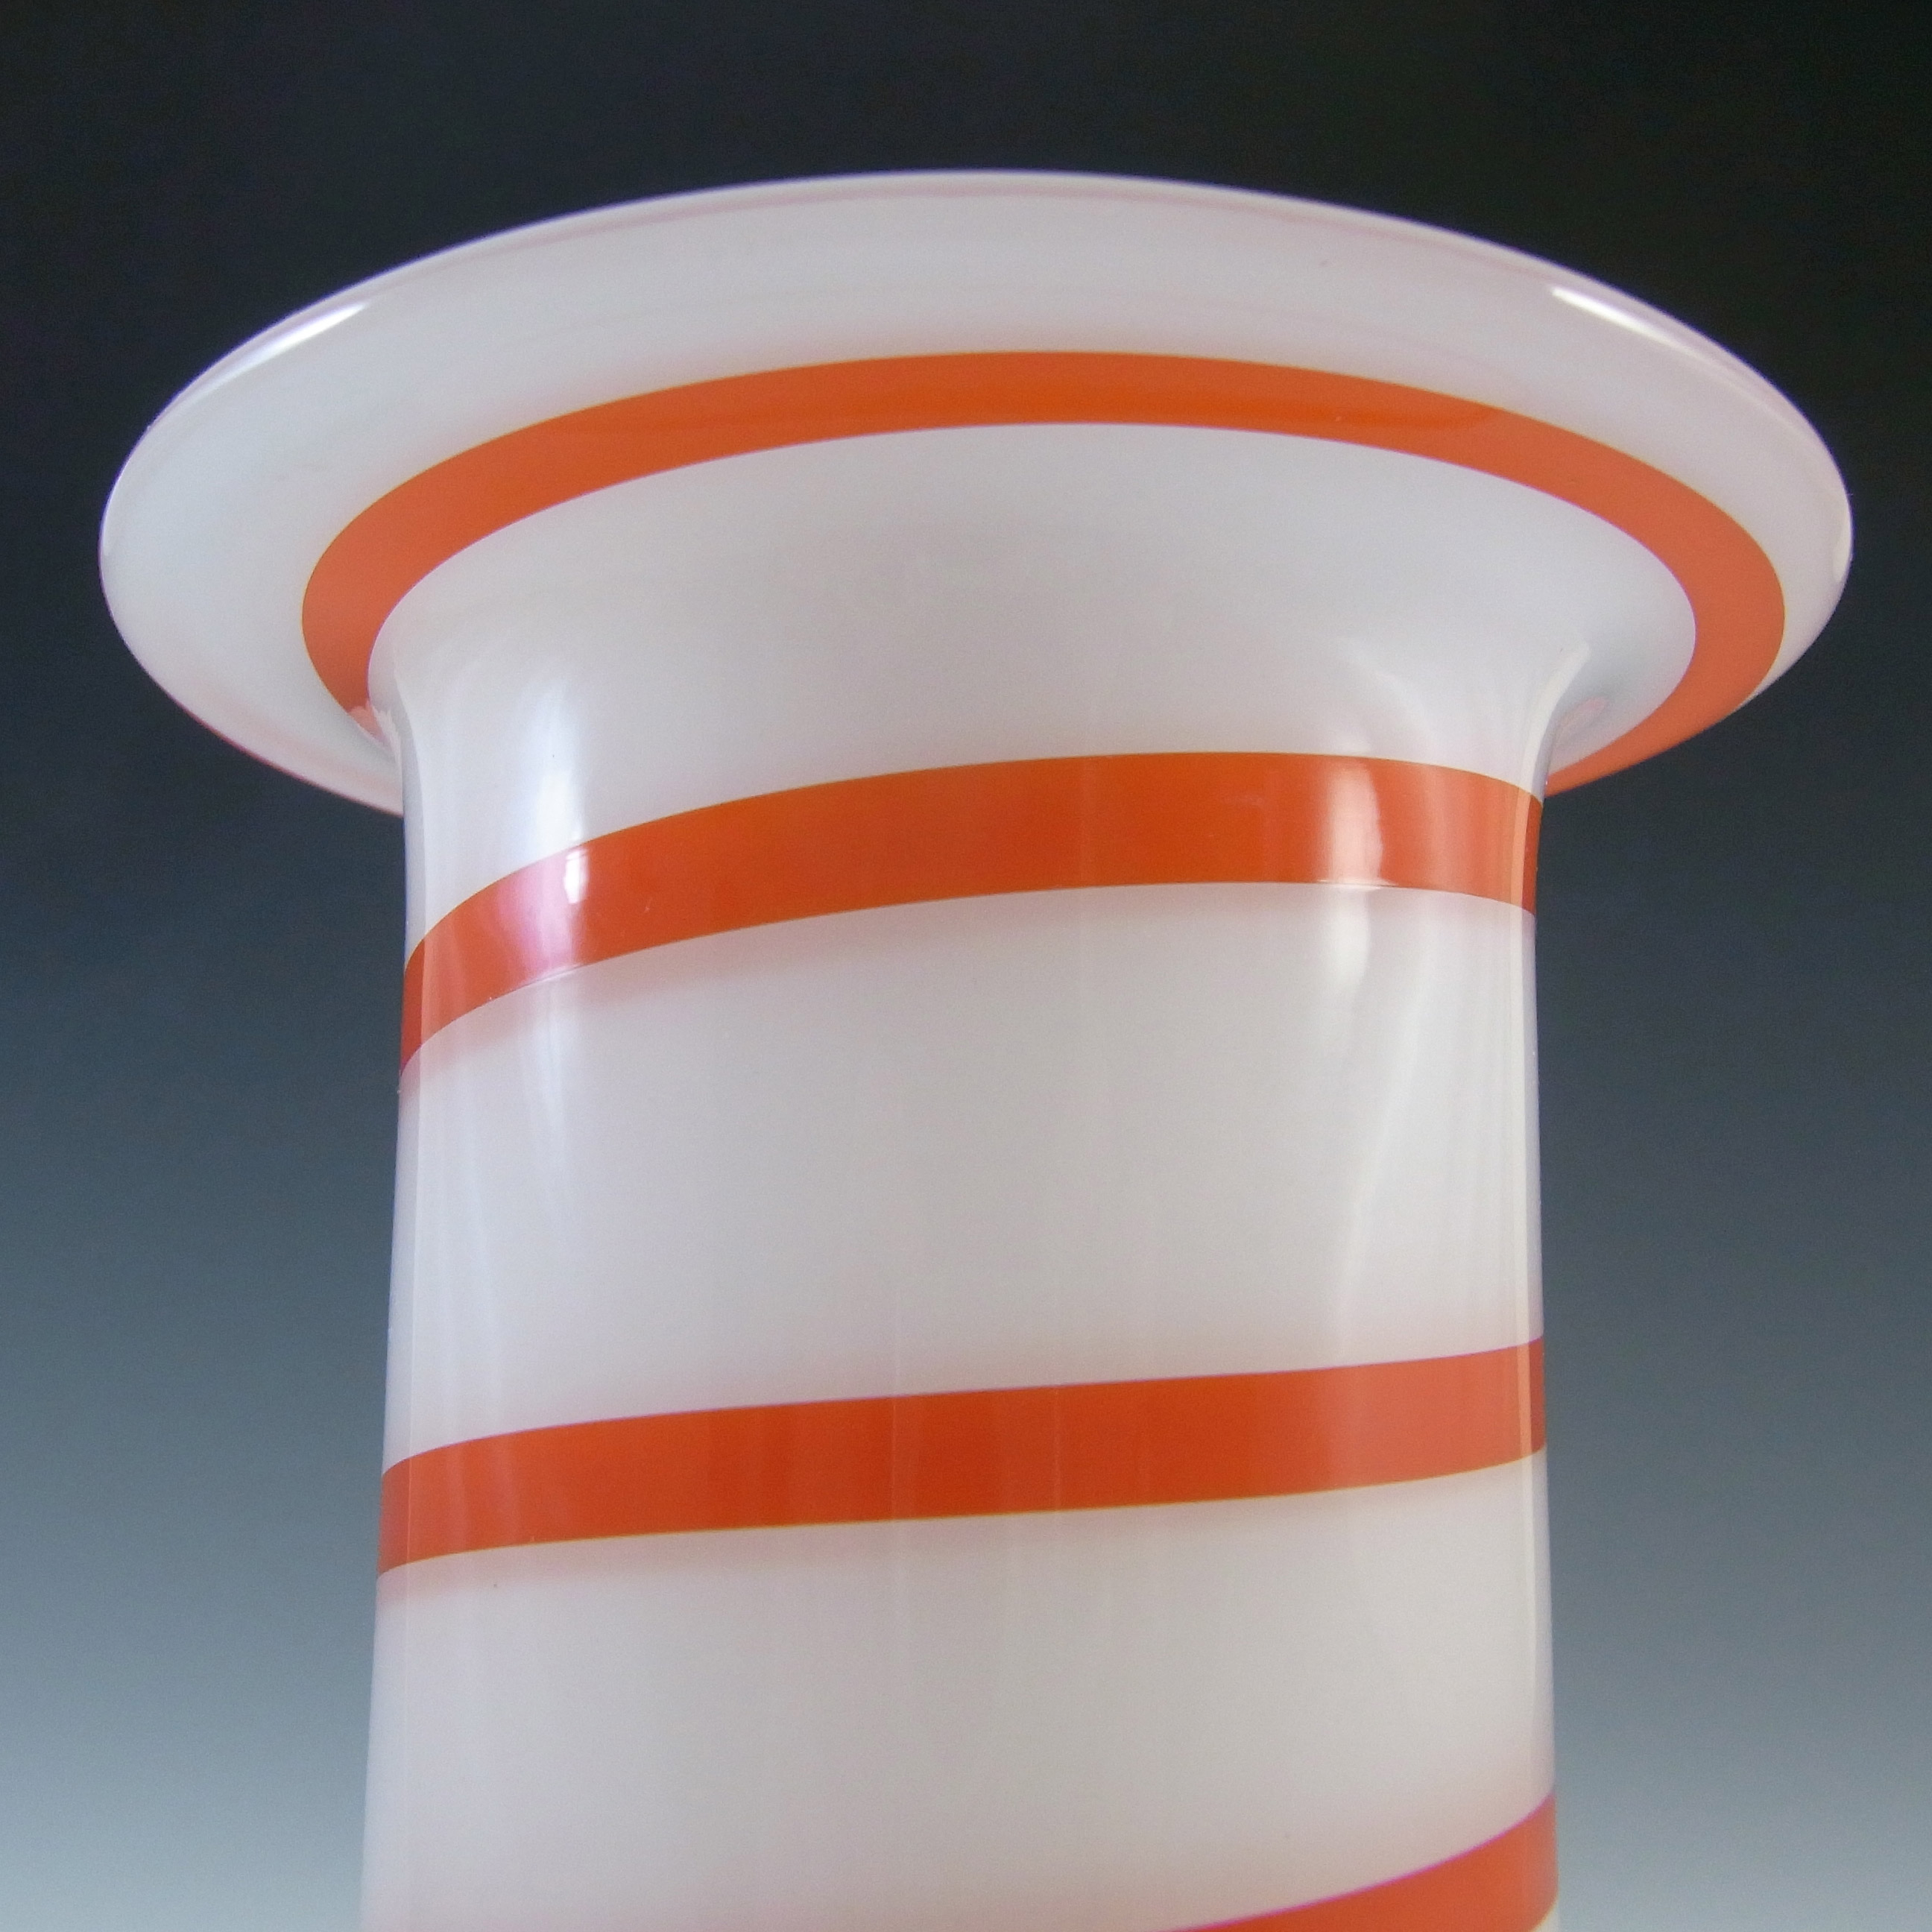 SIGNED Alsterfors/Per Strom White & Red Striped Glass Vase - Click Image to Close